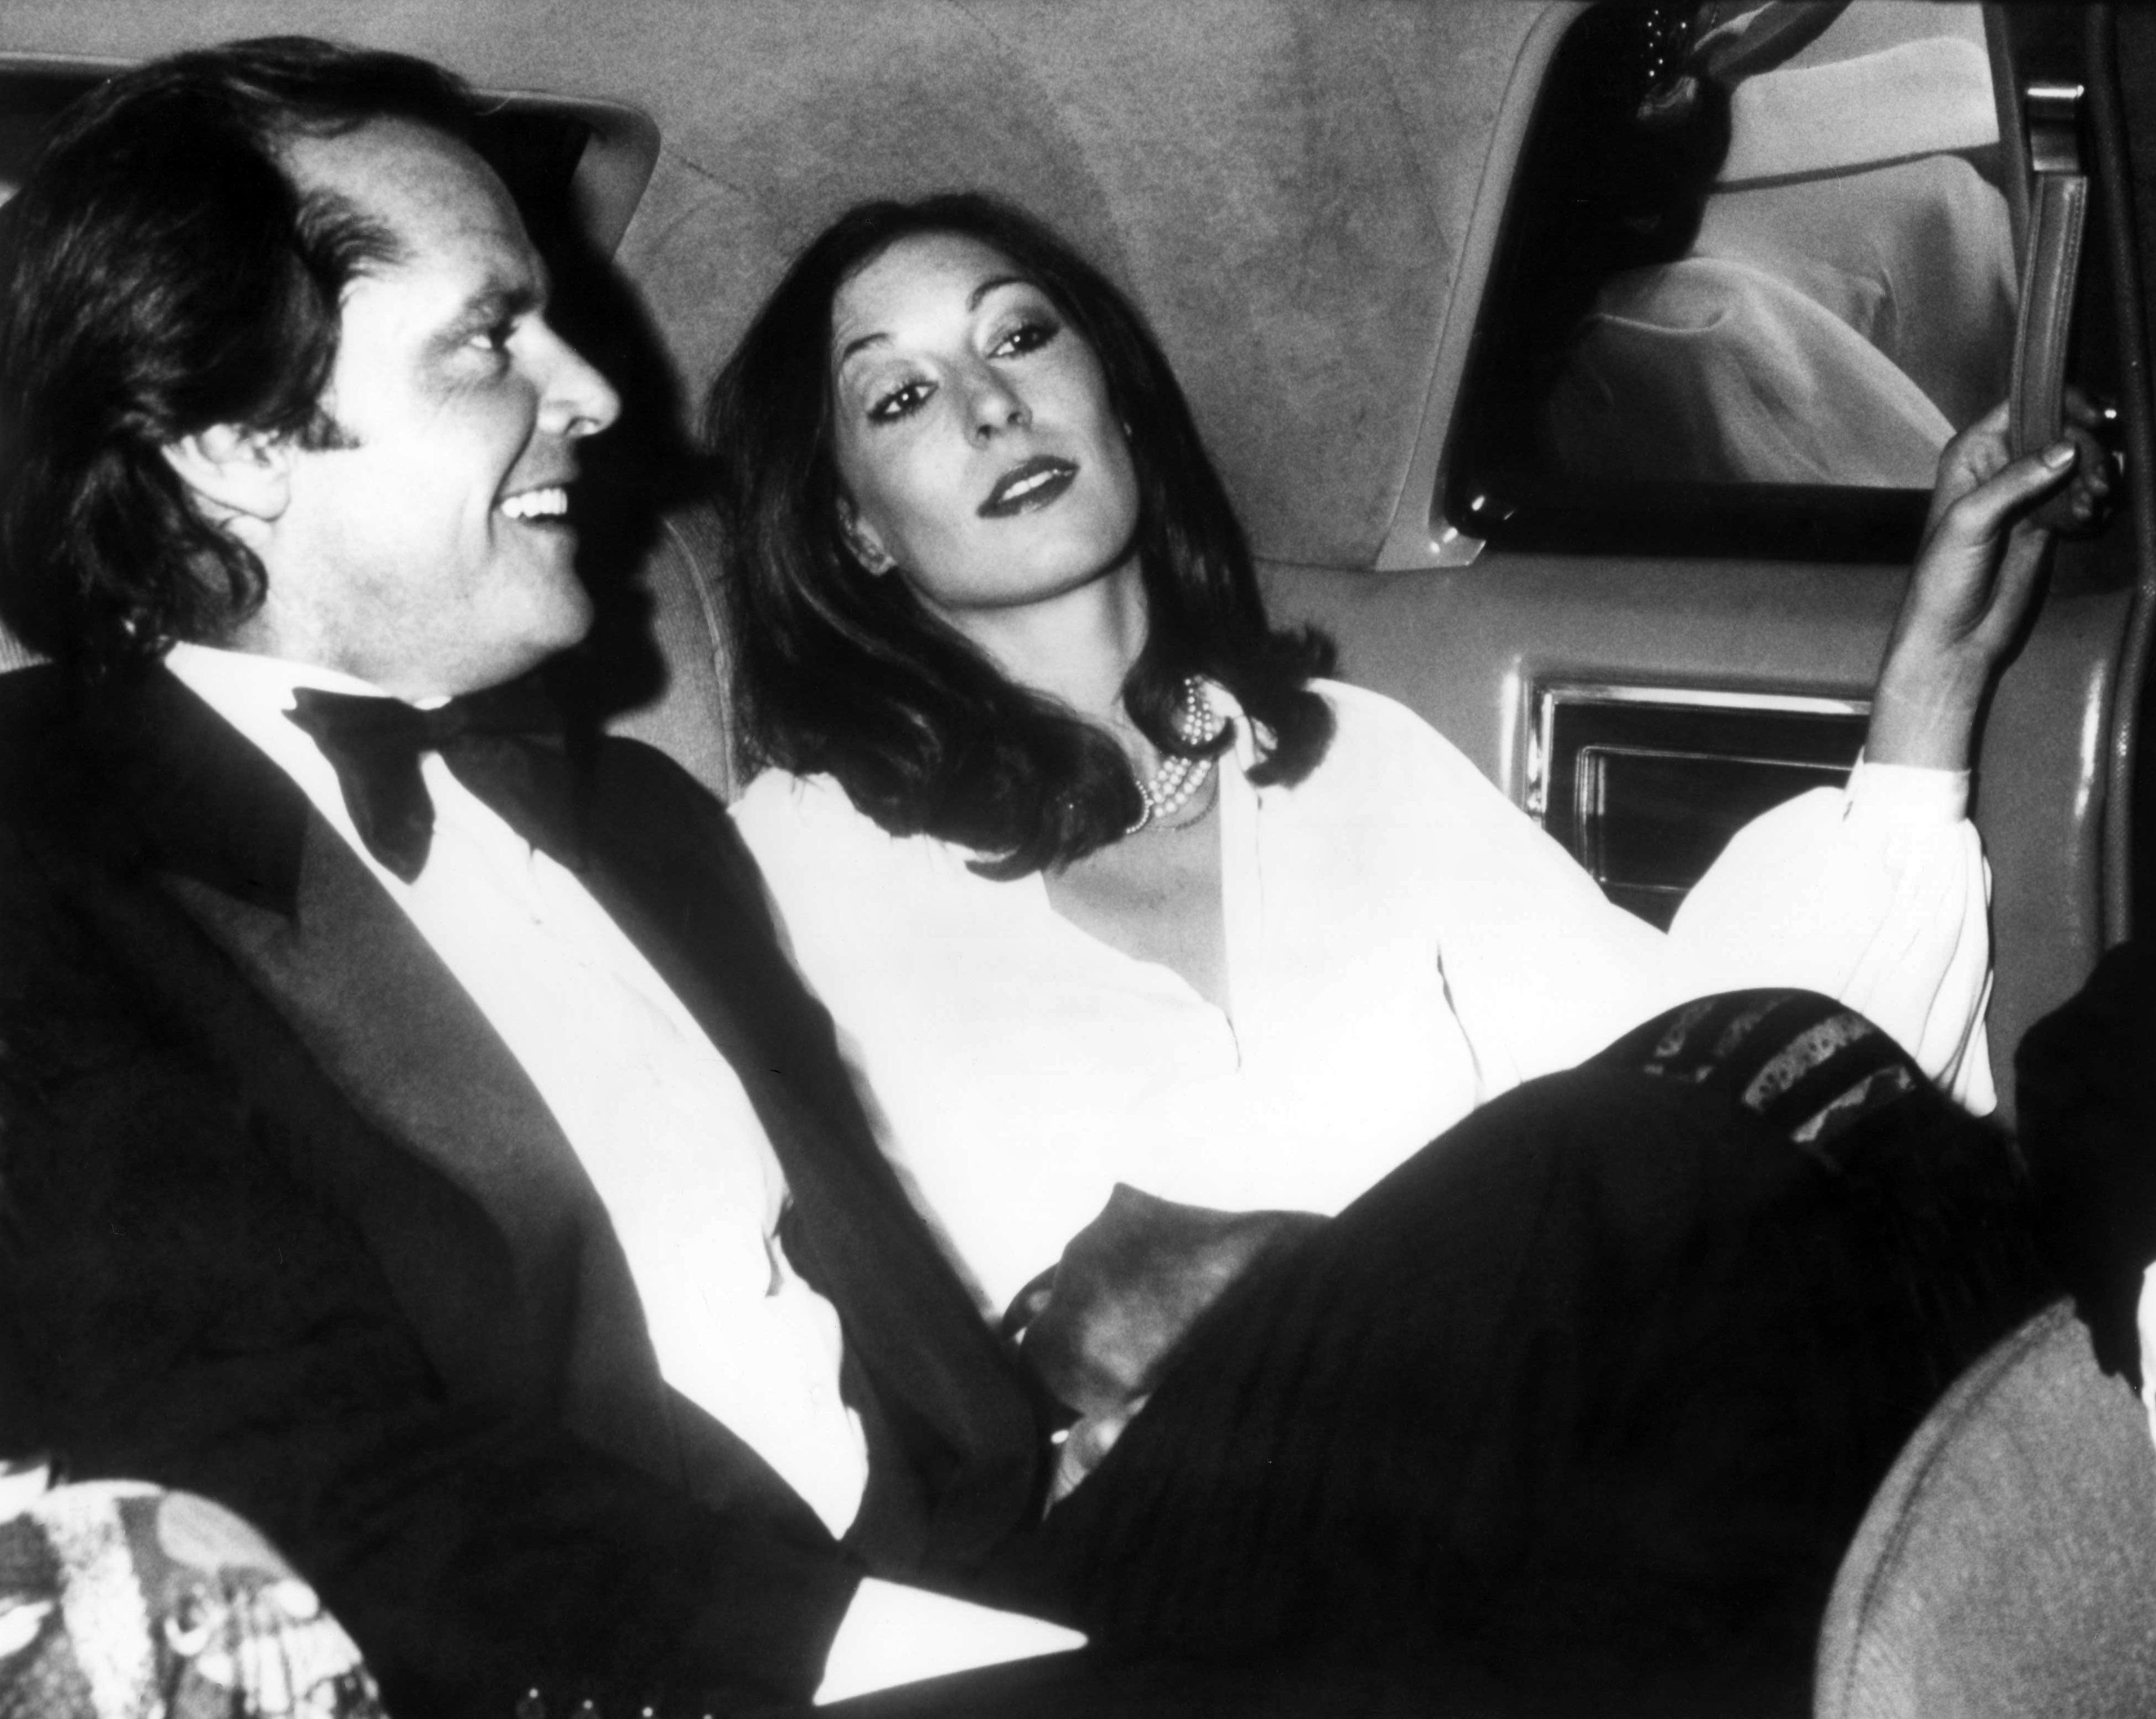 Huston with then-boyfriend Jack Nicholson in the 1970s.